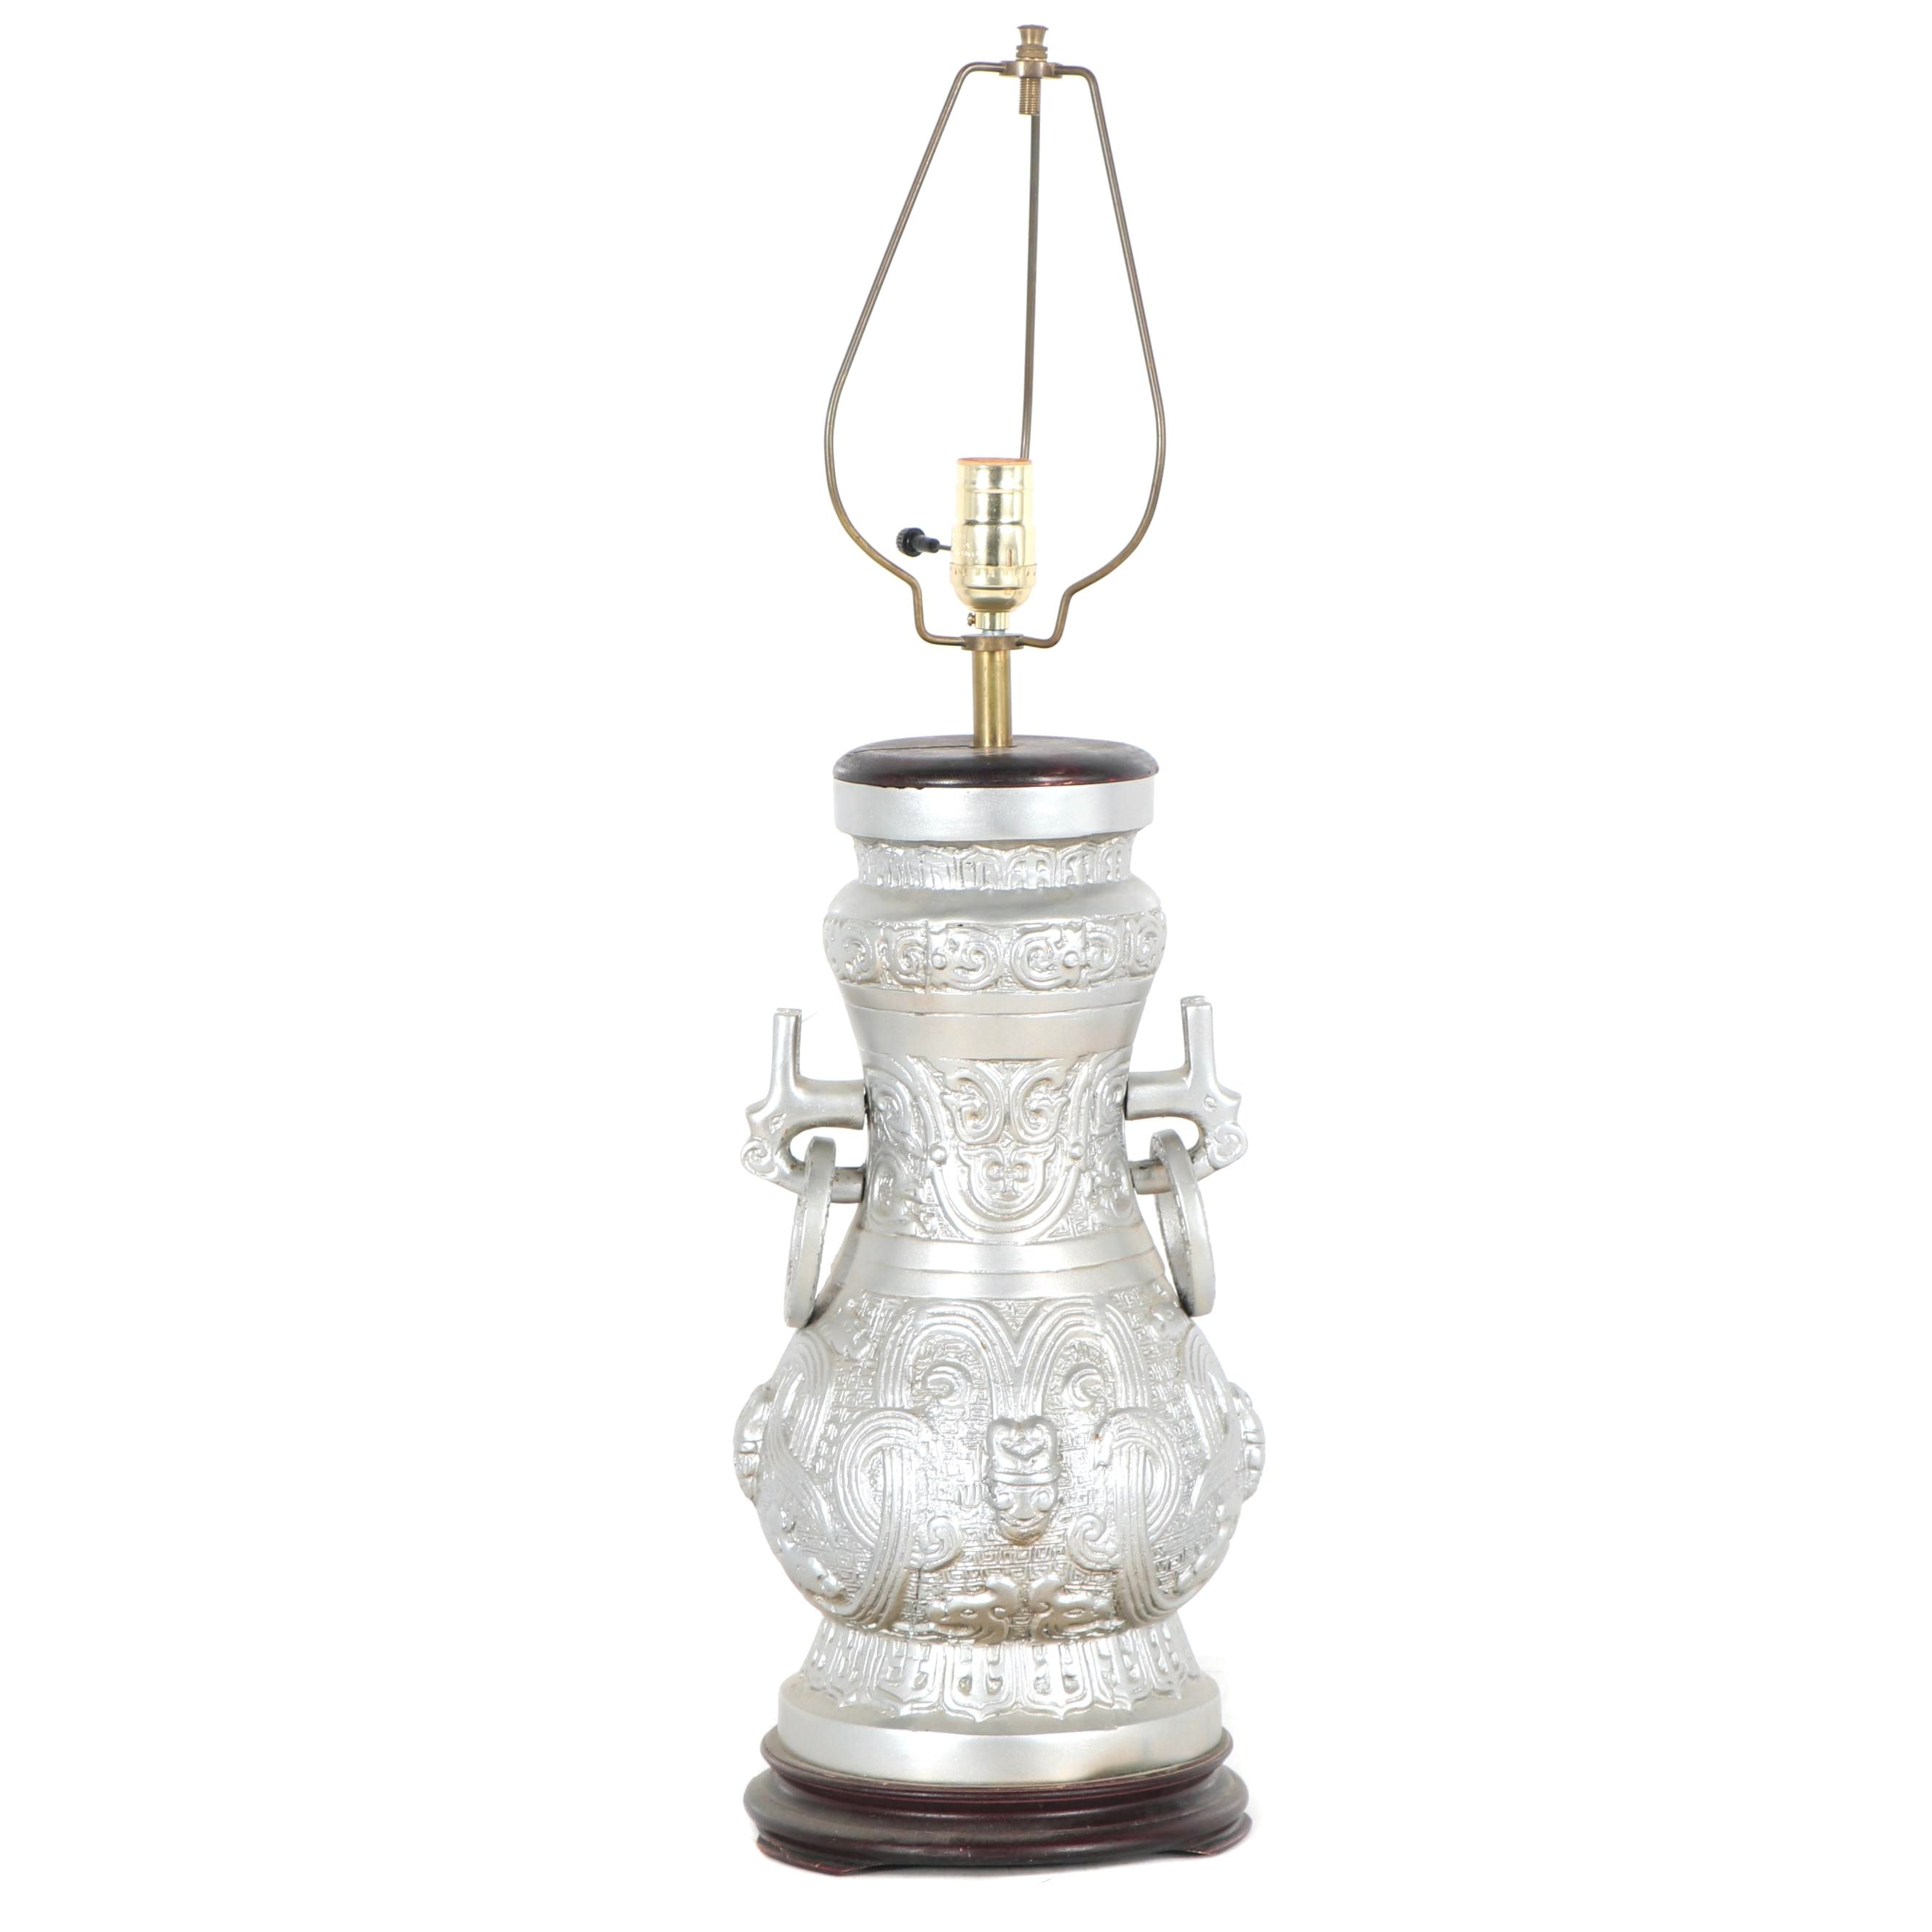 Chinoiserie Silver Painted Metal Table Lamp, Late 20th Century